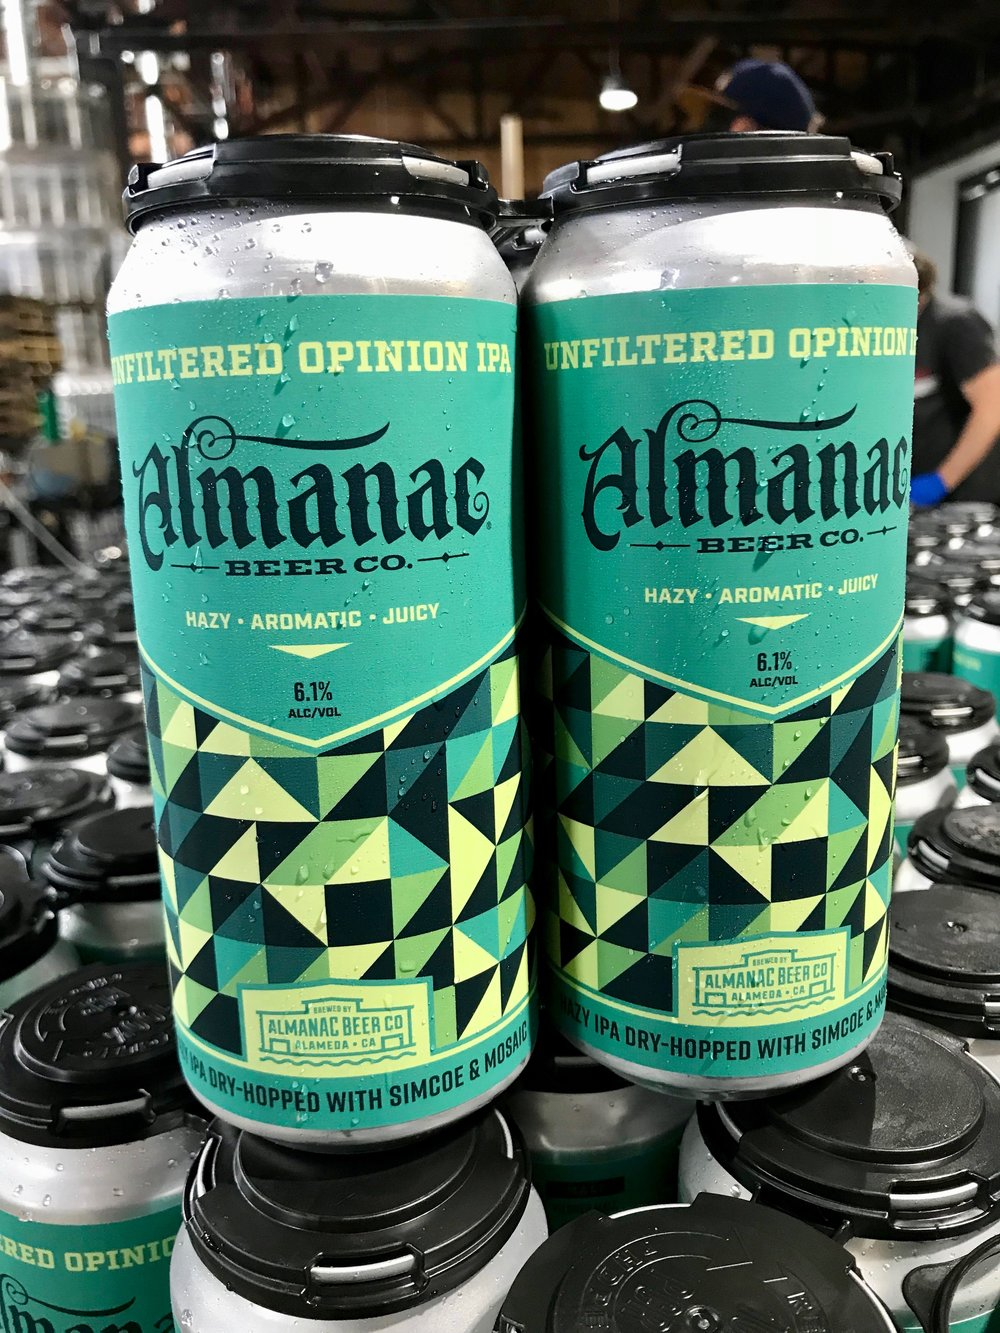 Almanac Beer Co. Unfiltered Opinion IPA can design by DKNG